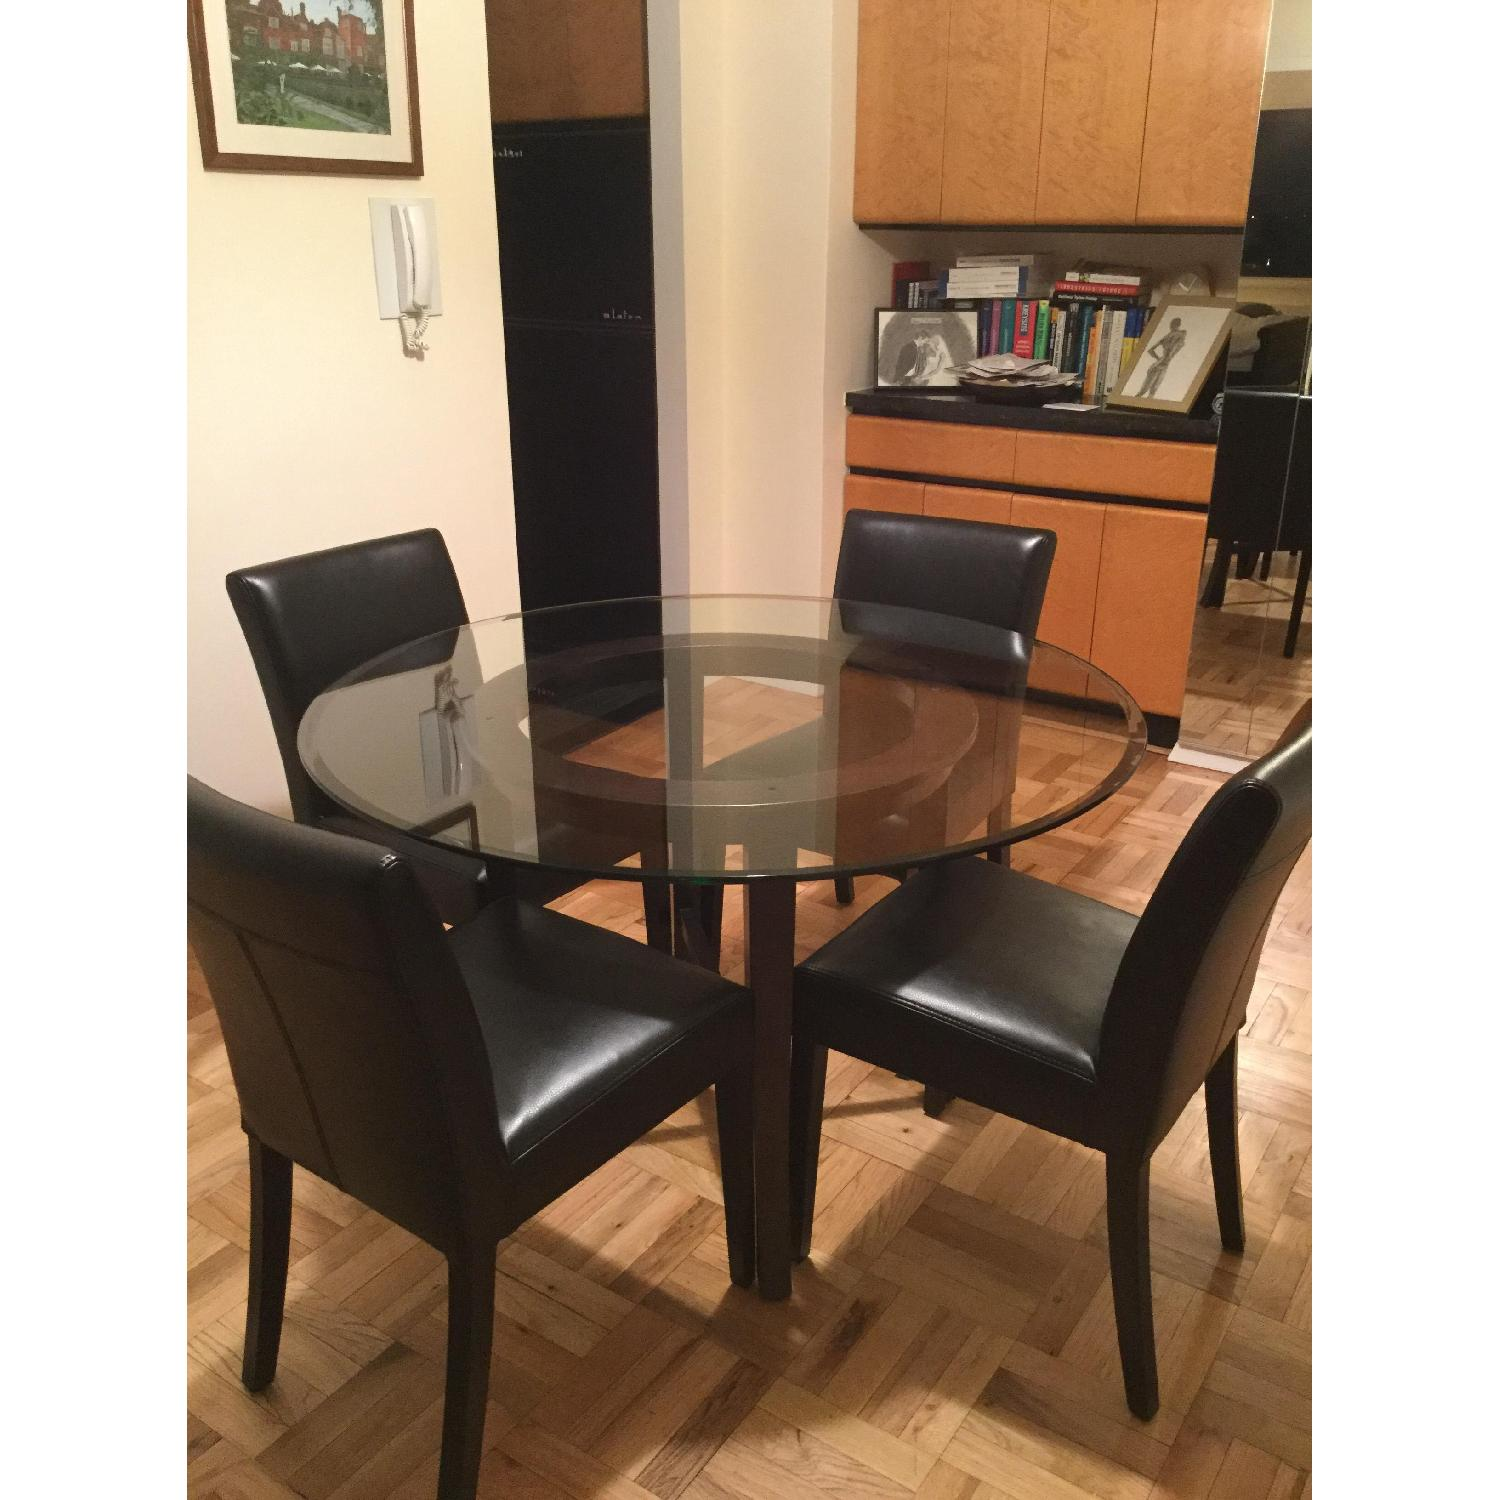 Crate & Barrel Glass Dining Table w/ 4 Black Leather Chairs - image-2